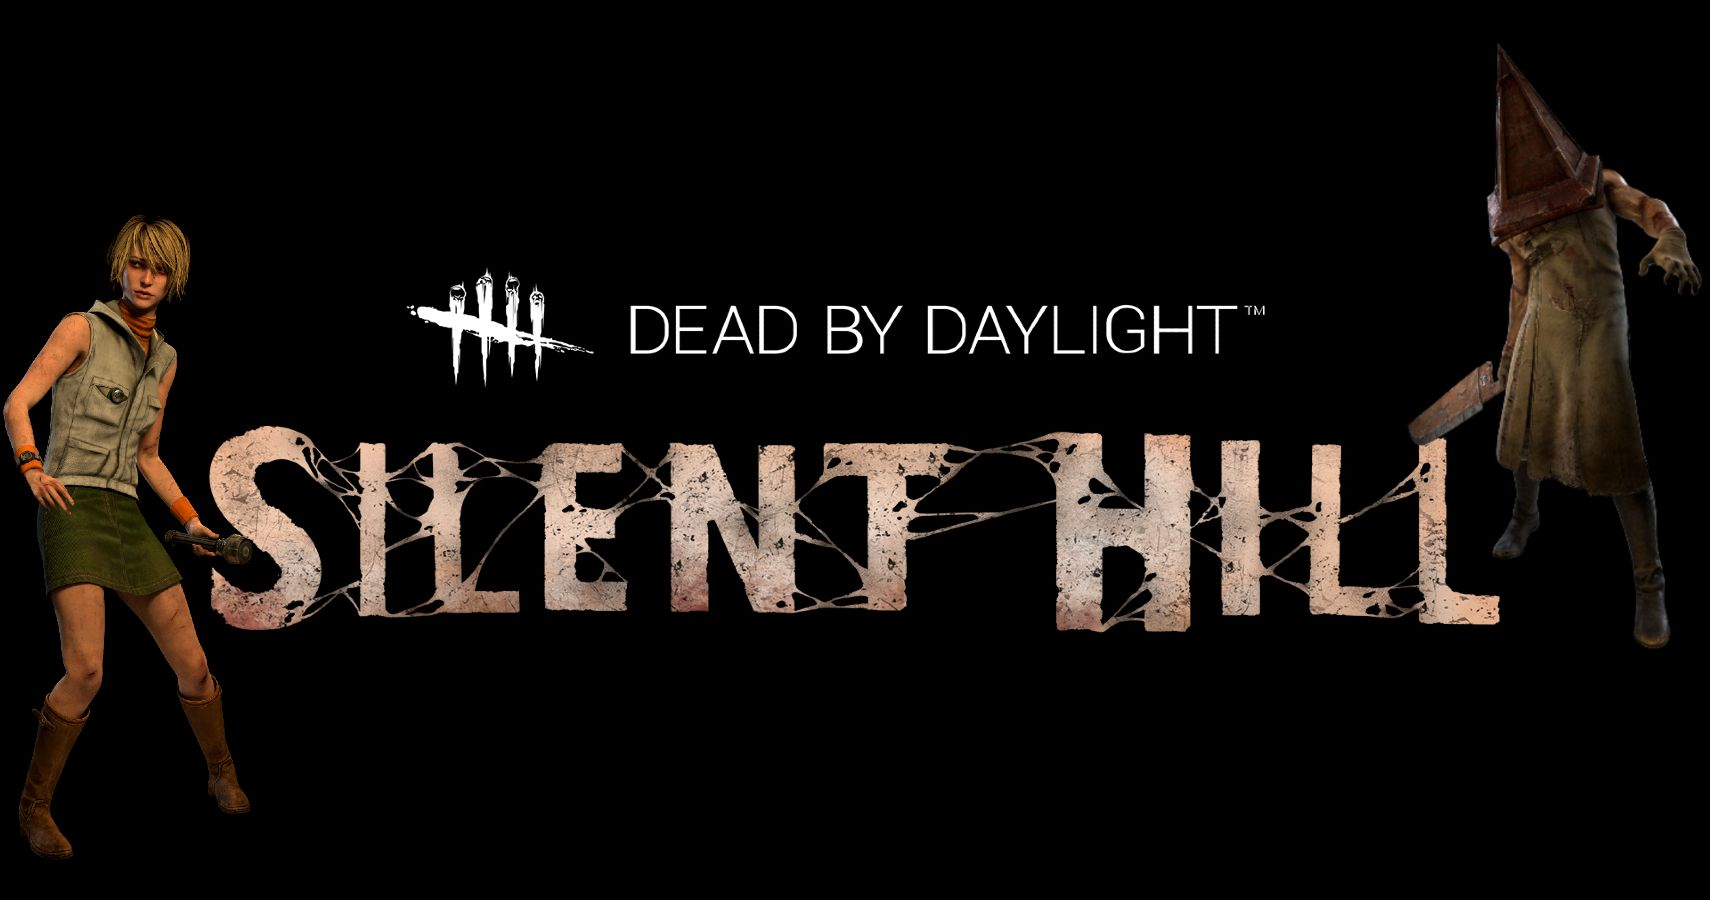 Silent Hill S Pyramid Head Comes To Judge You In Dead By Daylight